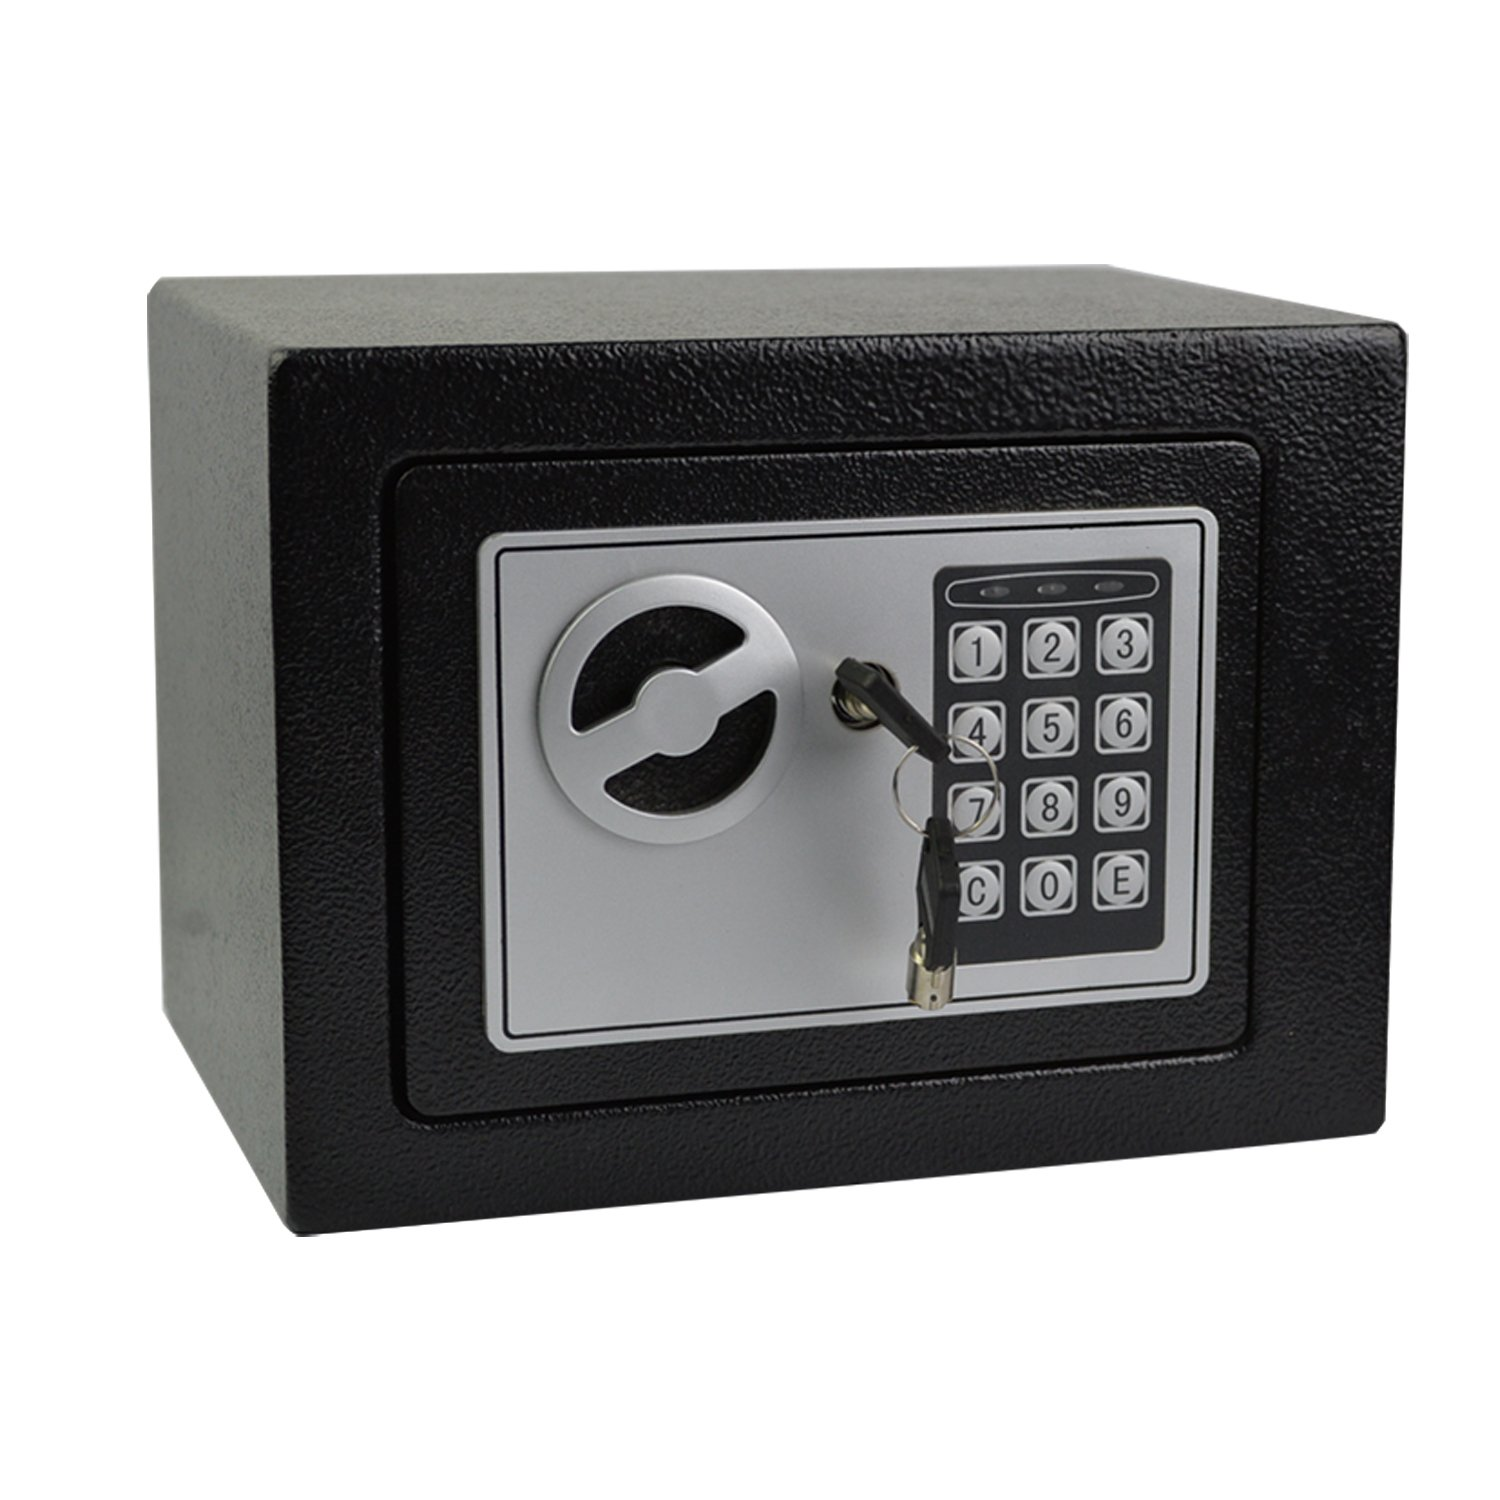 0.2 Cubic Feet Smart Electronic Digital Security Safe Box Keypad Lock, Home Office Hotel Business Jewelry Gun Cash Use Mini Cabinet Storage with 4 Test Batteries